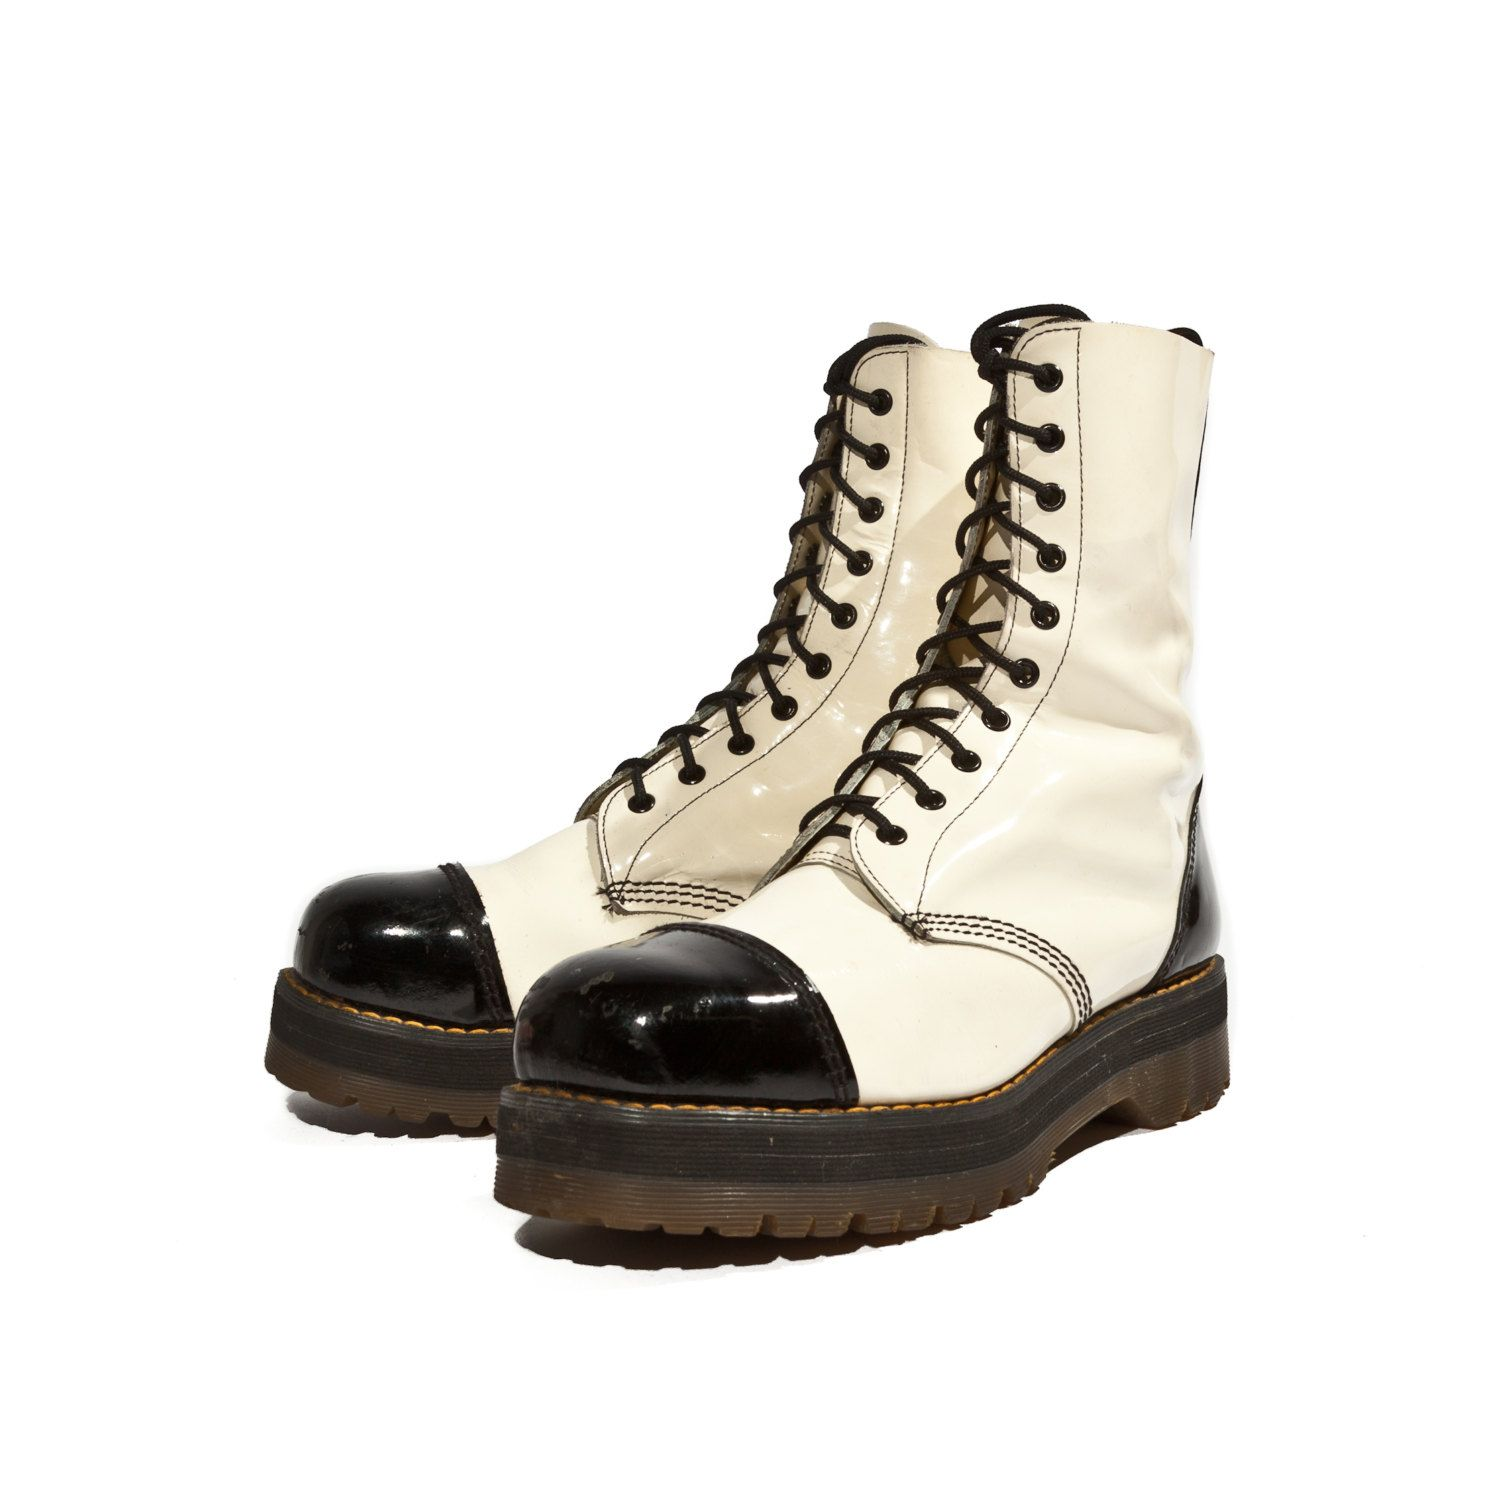 Vintage Dr Marten Boots Black and White Patent Leather Tuxedo ...